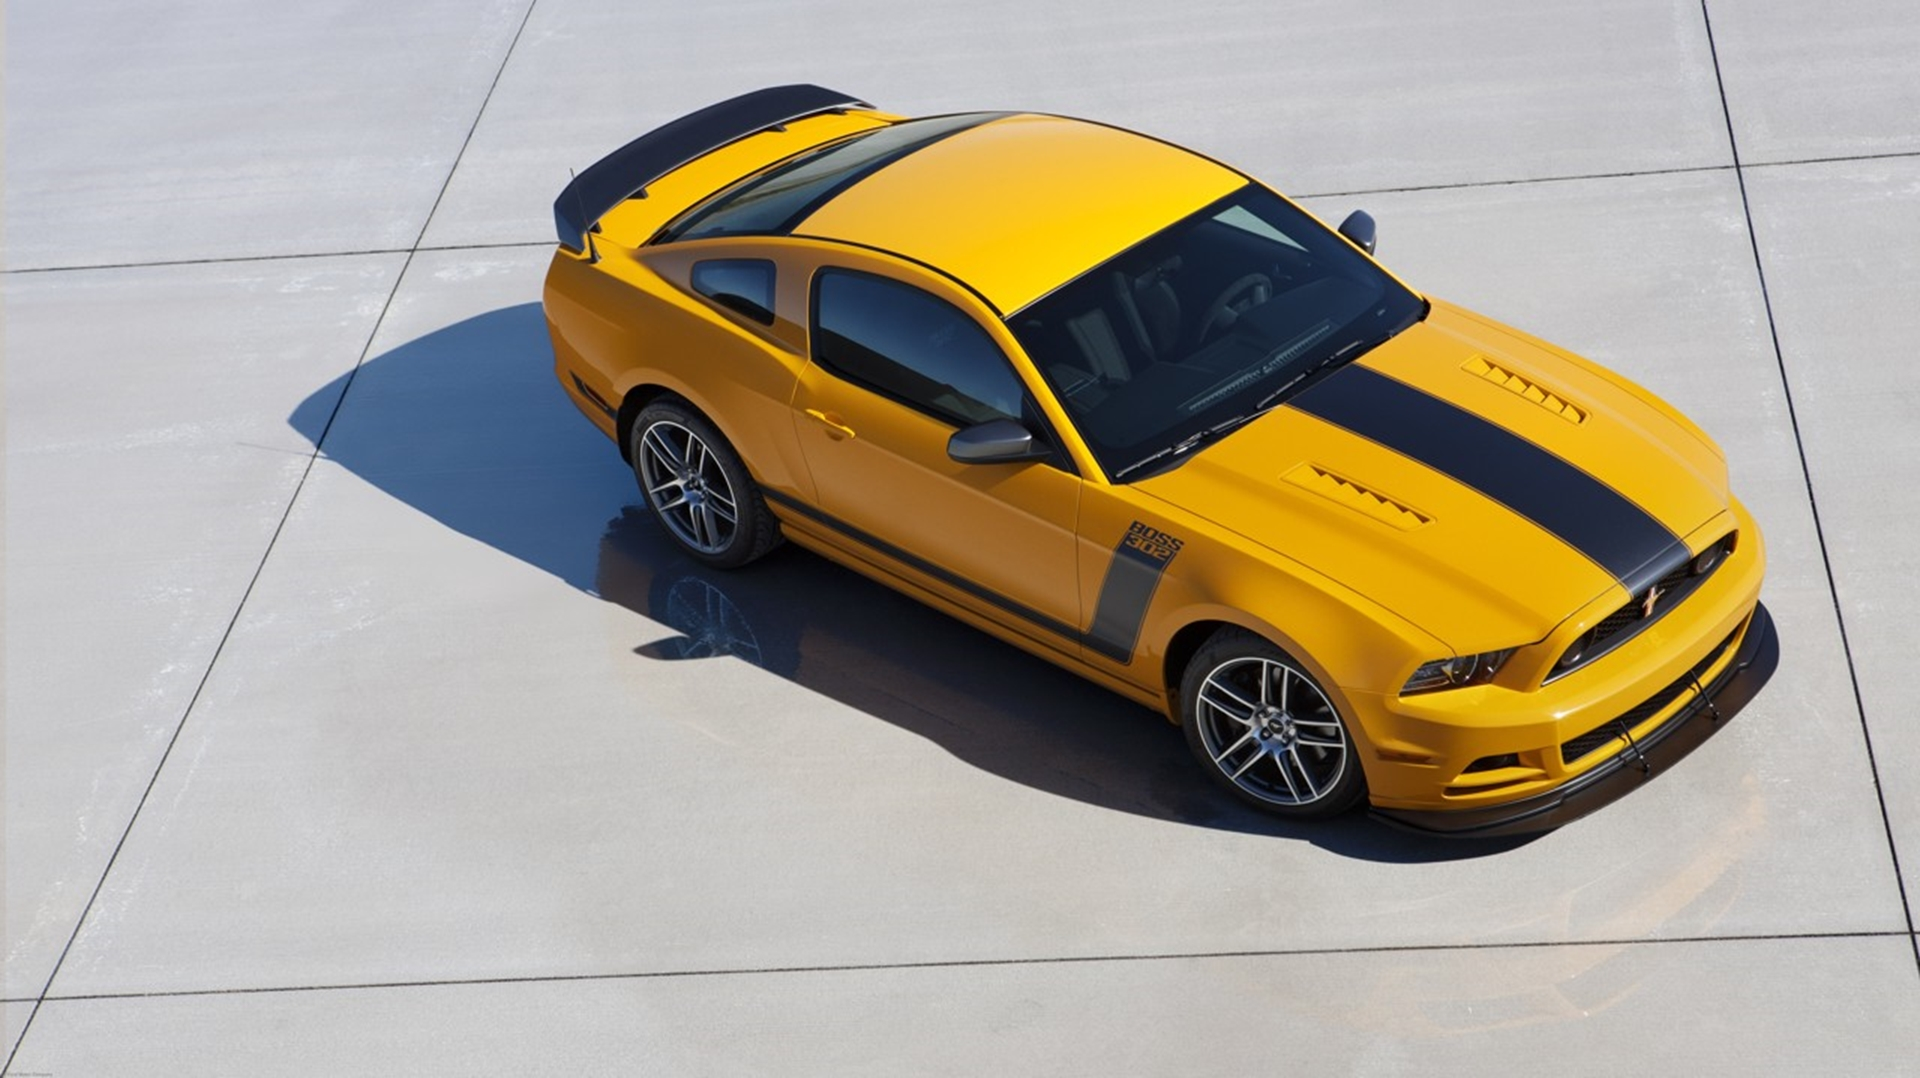 Ford motor company to provide custom 2013 mustang boss 302 for Ford motor company charitable donations